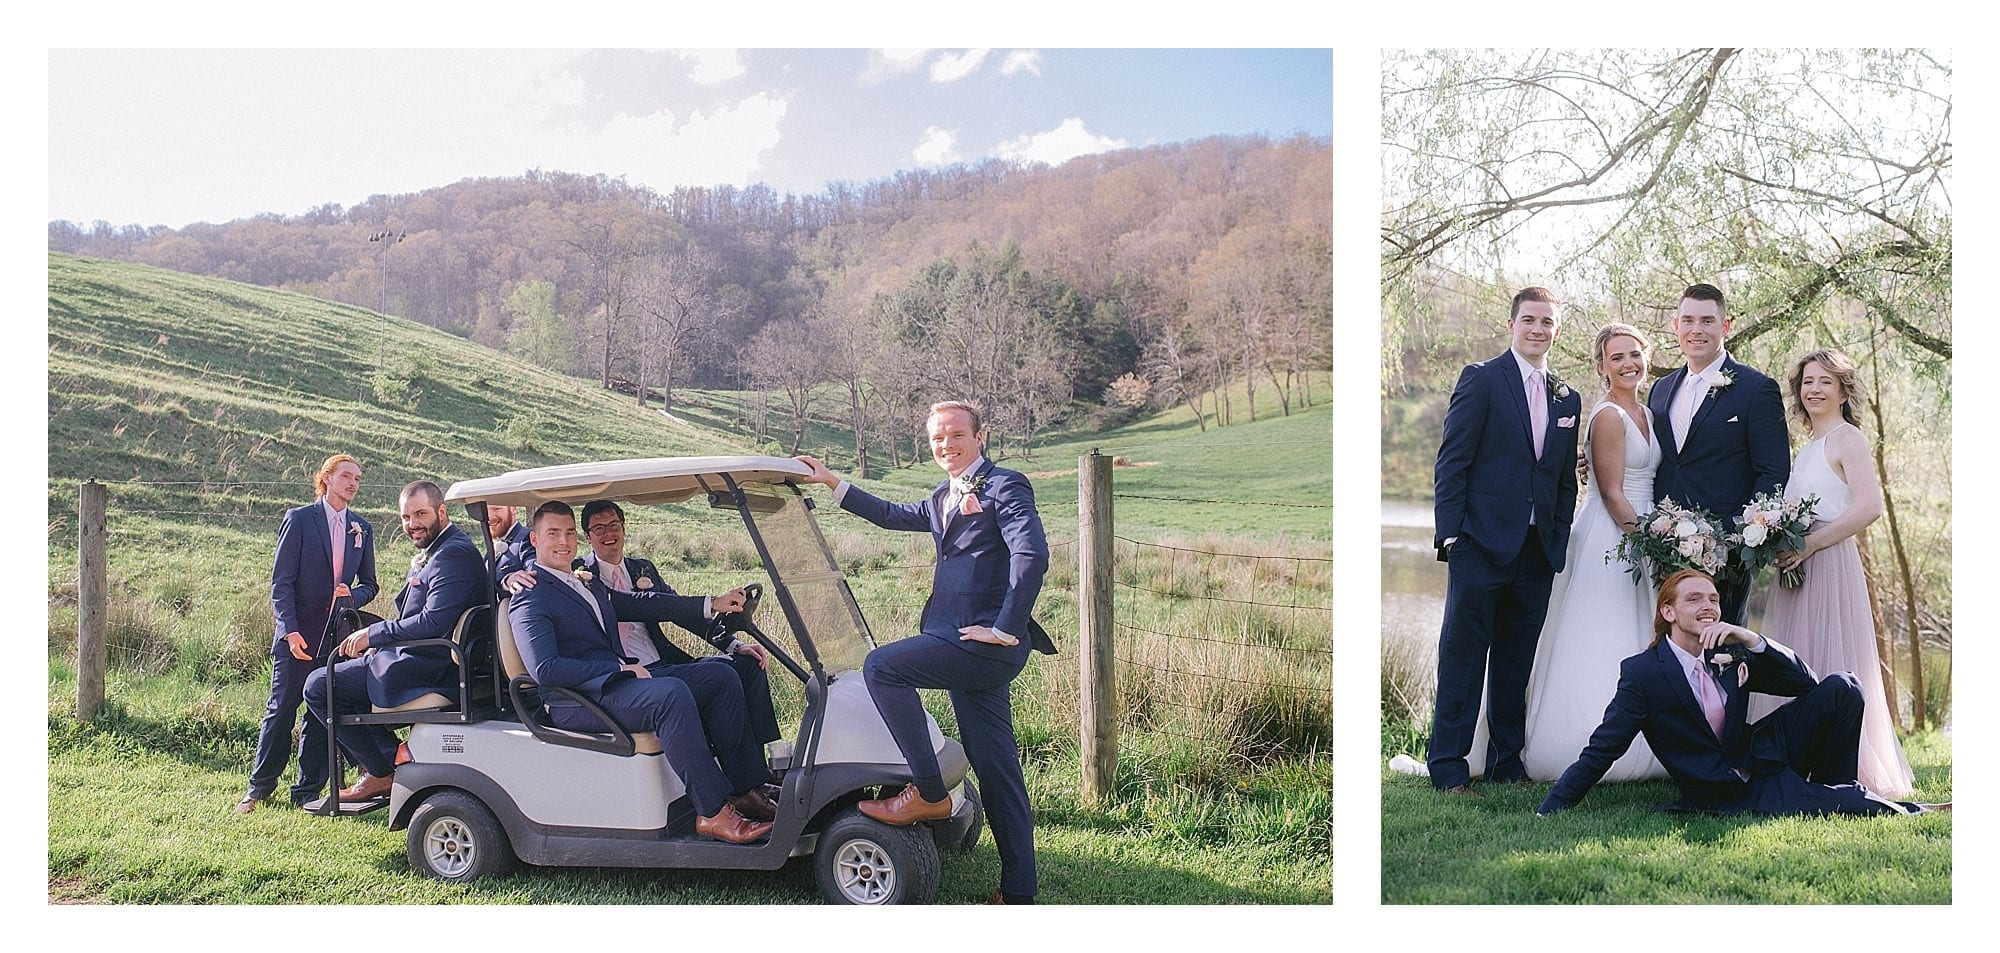 Wedding party posing beside pond under willow tree and groomsmen posing on golf cart